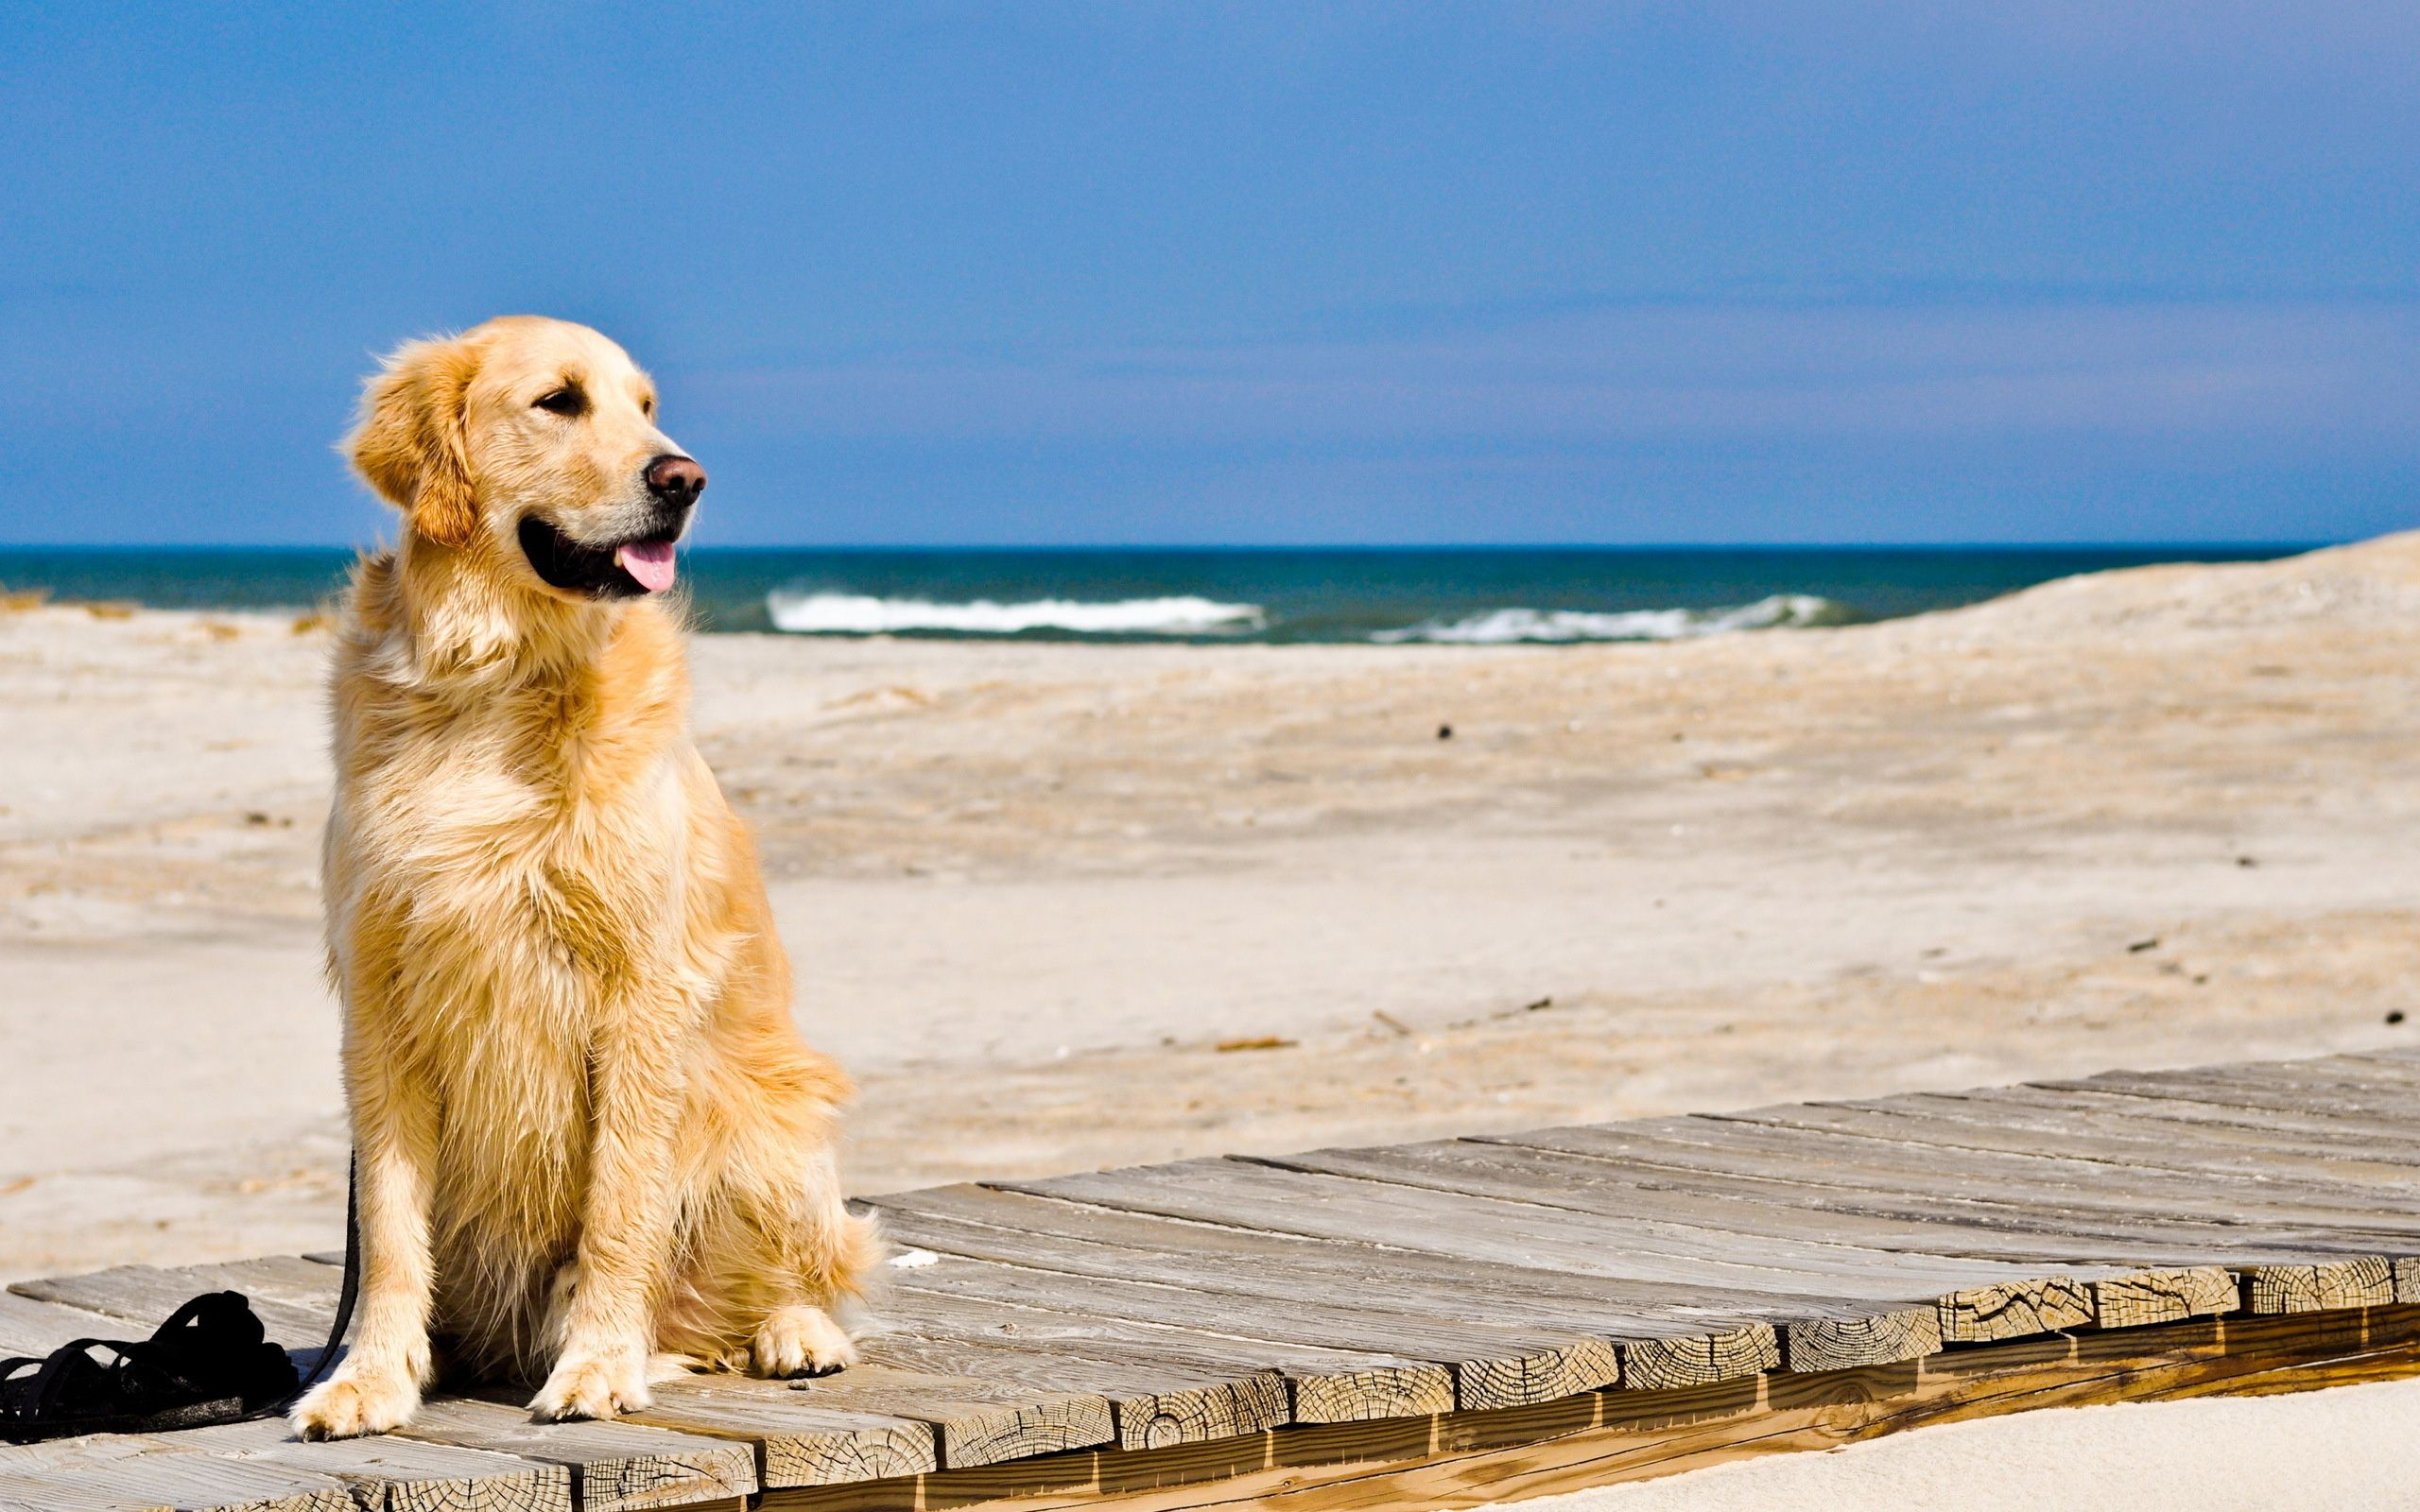 Beautiful Dogs In Beach Computer Wallpaper 1456 Wallpaper Golden Retriever Wallpaper Dogs Golden Retriever Golden Retriever